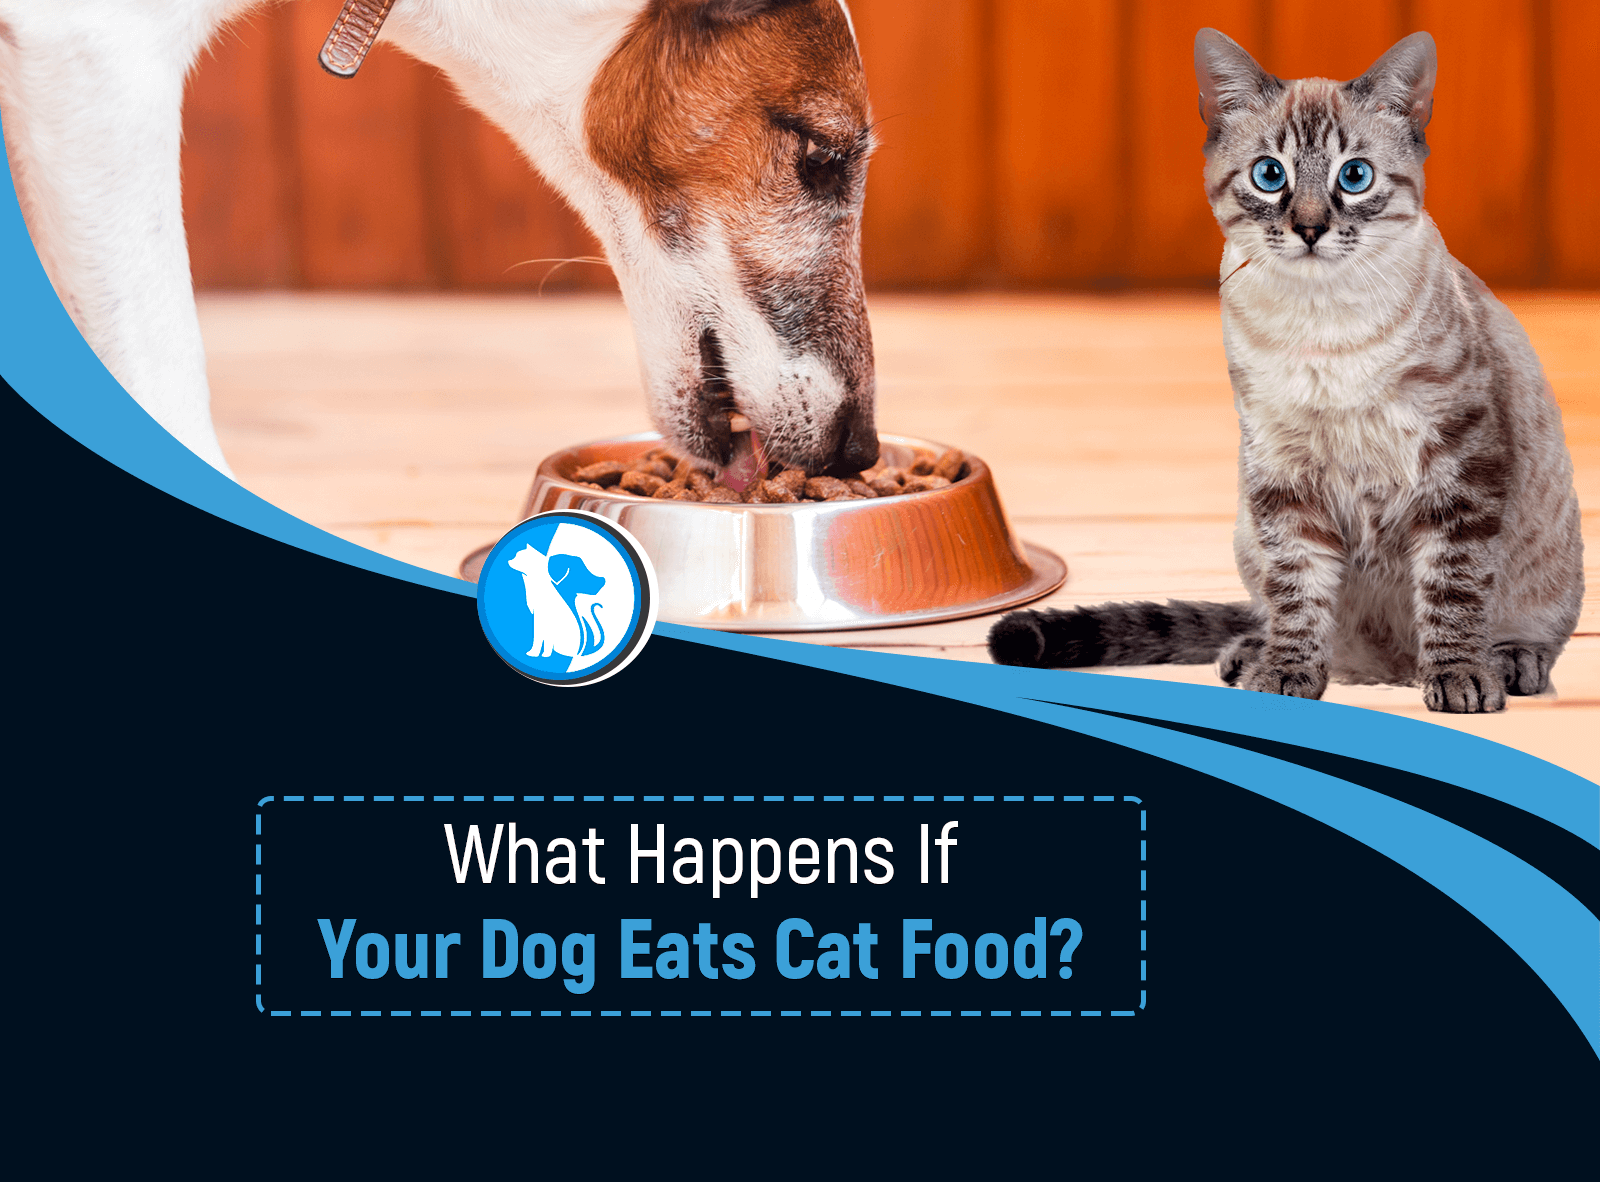 What Happens If Your Dog Eats Cat Food?